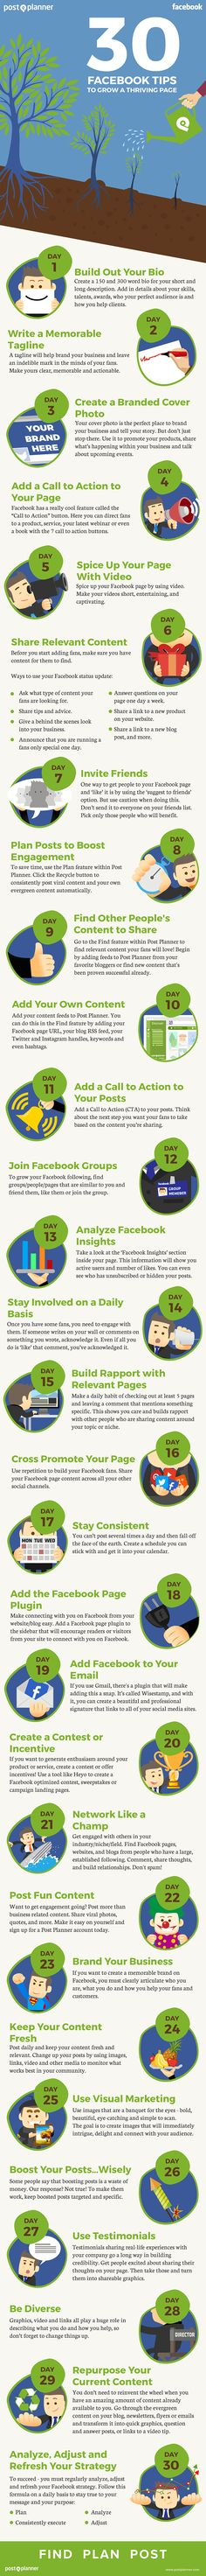 30_Facebook_Tips_to_Grow_a_Thriving_Page-01.png (800×9980)